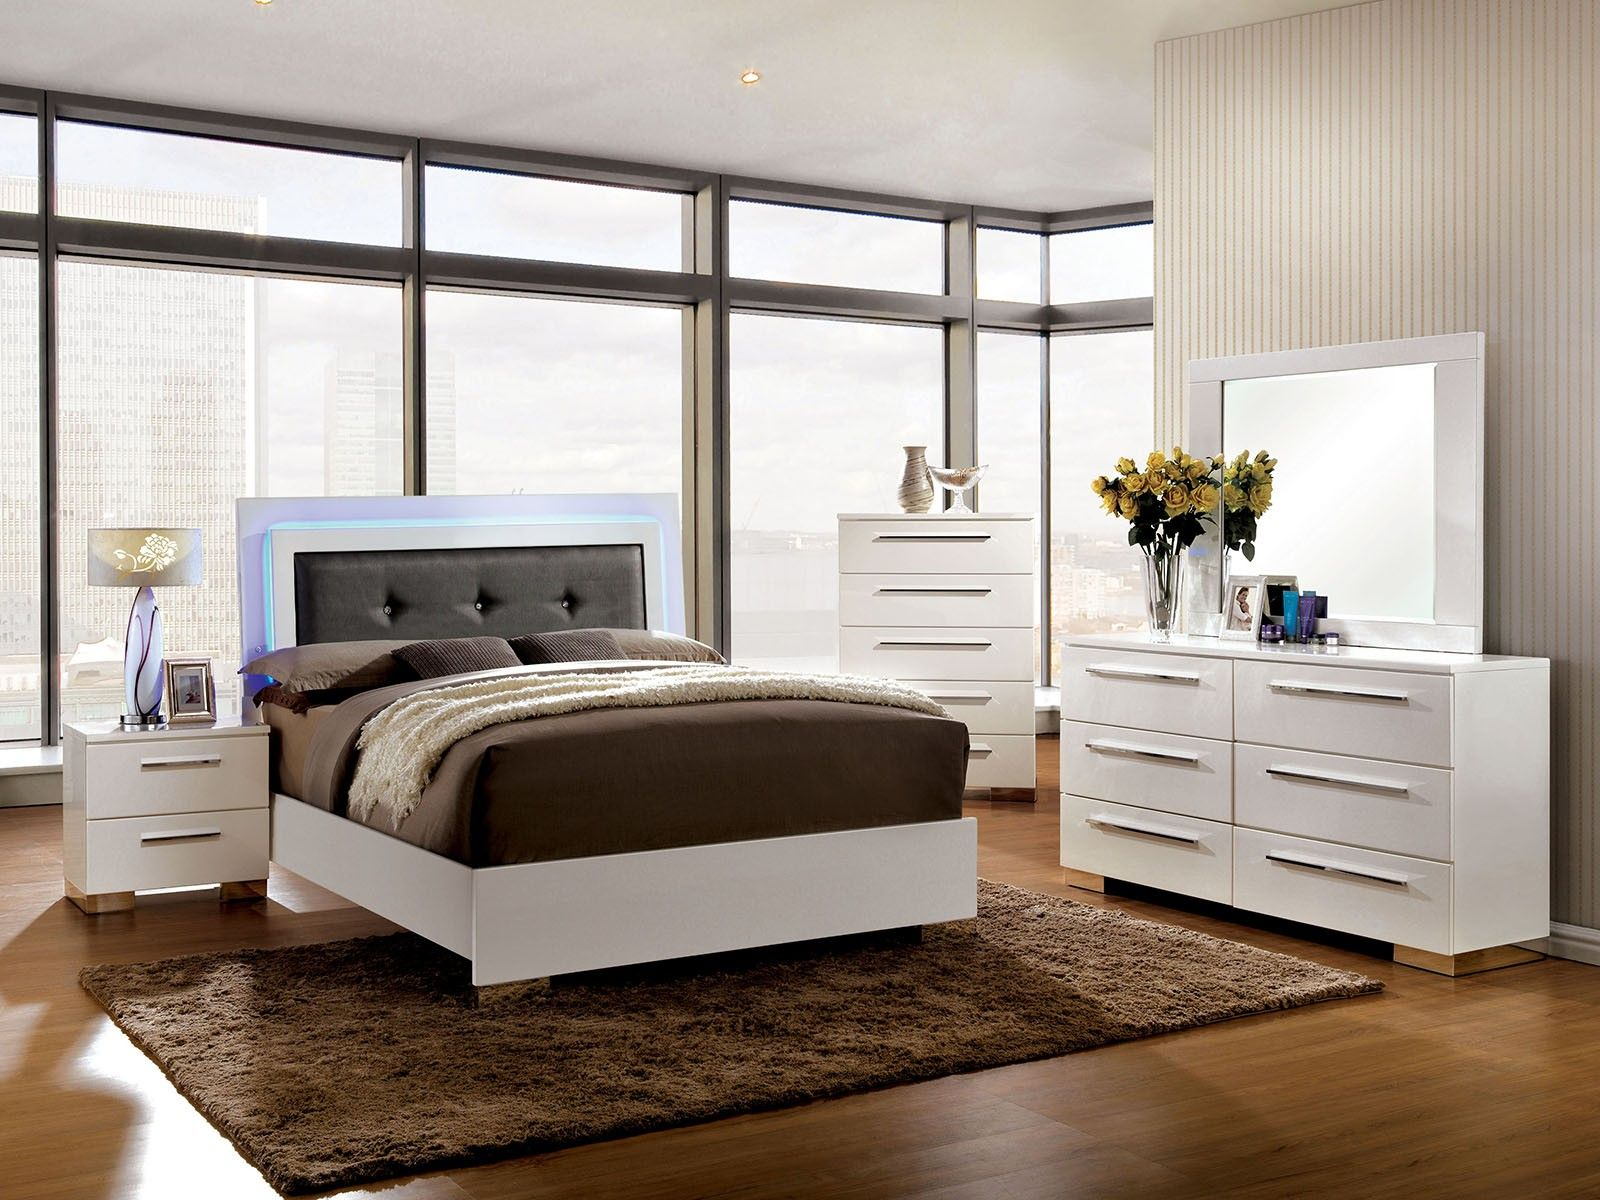 brown bedroom sets also white storage with mirror